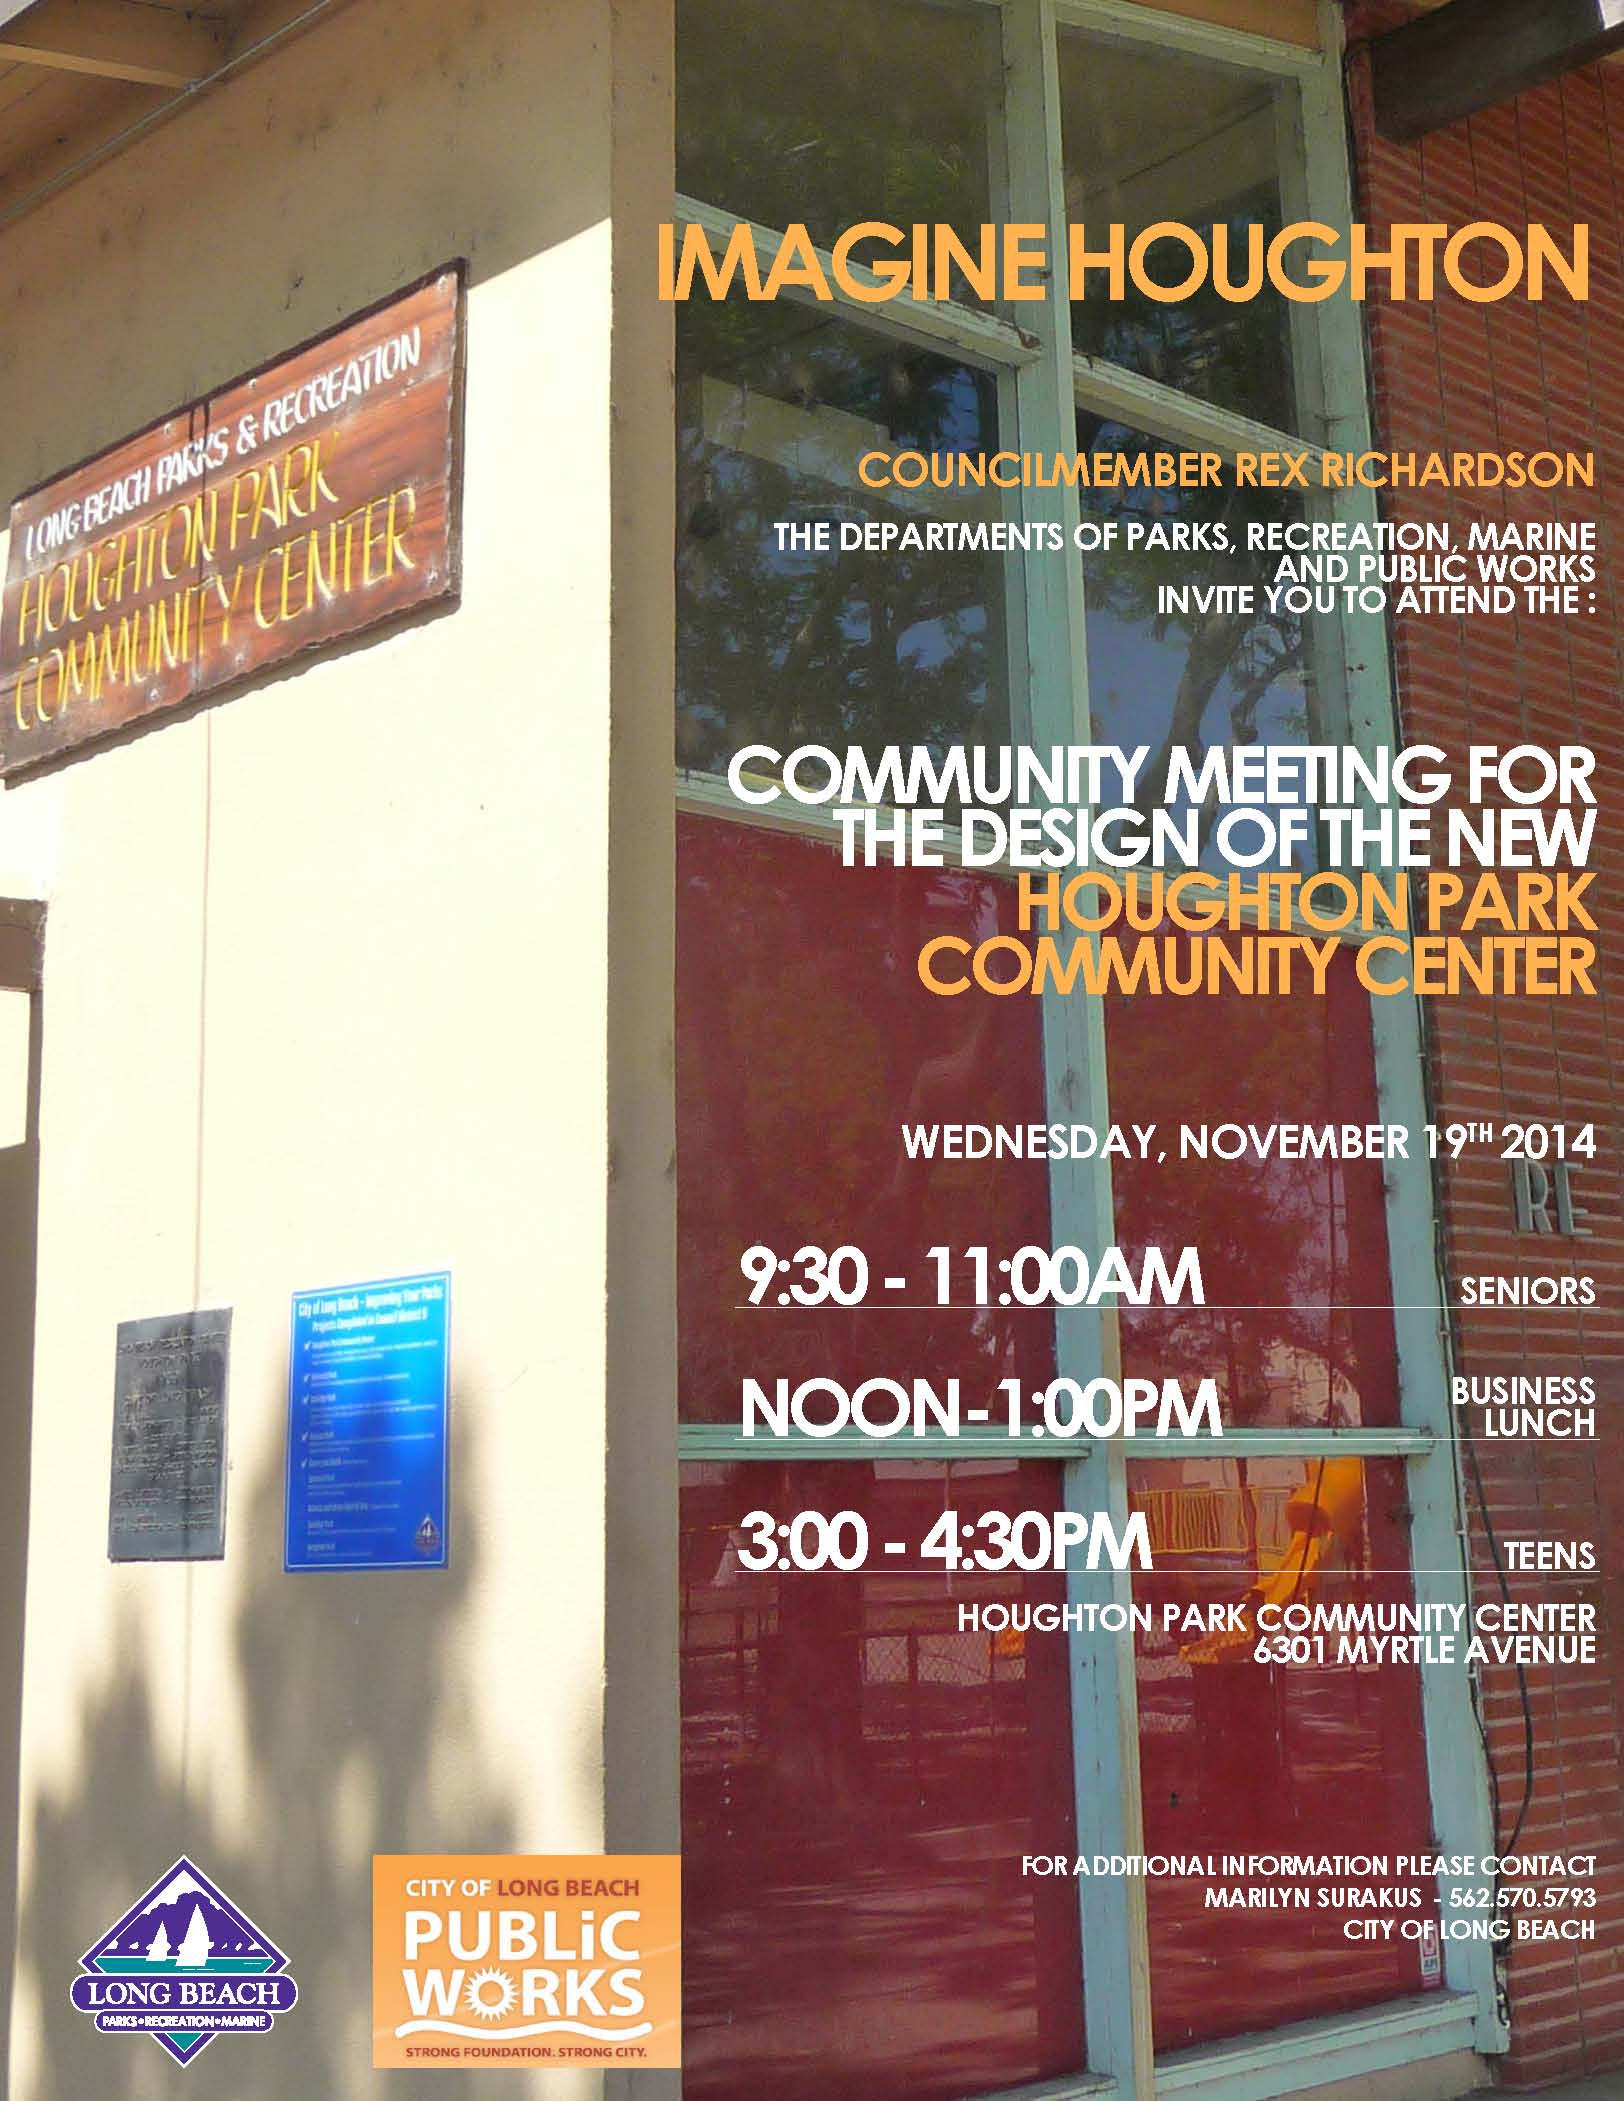 14-1111_Houghton_Park_CC_Community_Meeting_Flyer.jpg